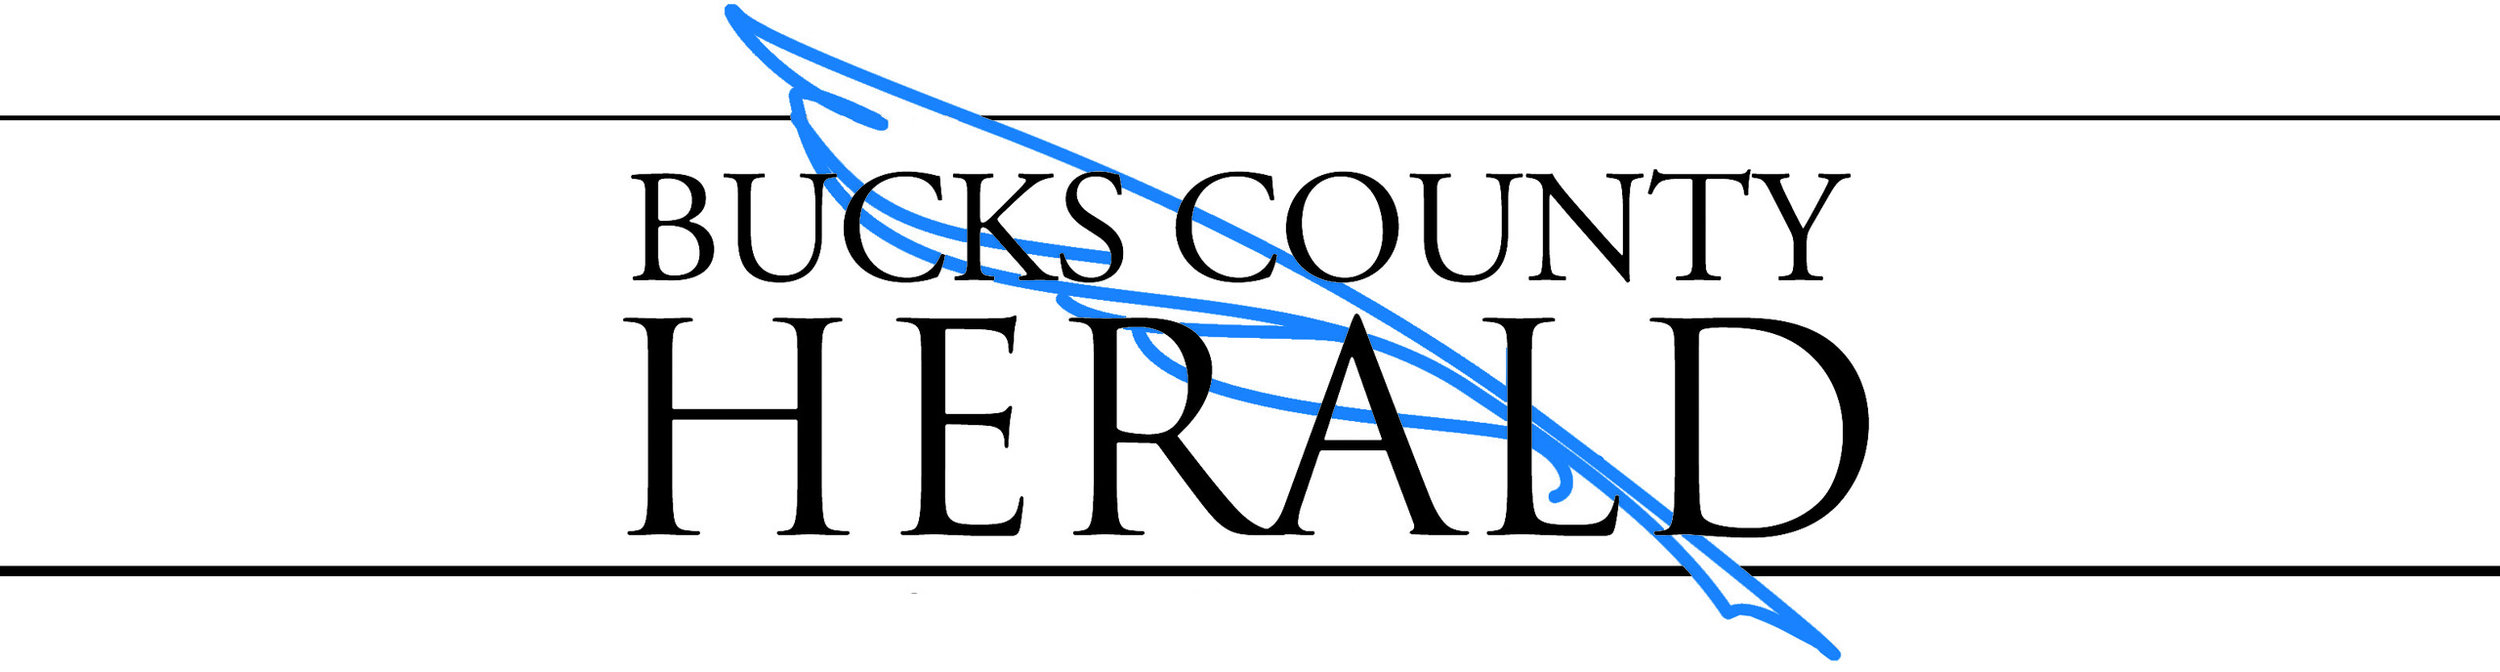 Bucks County Herald -